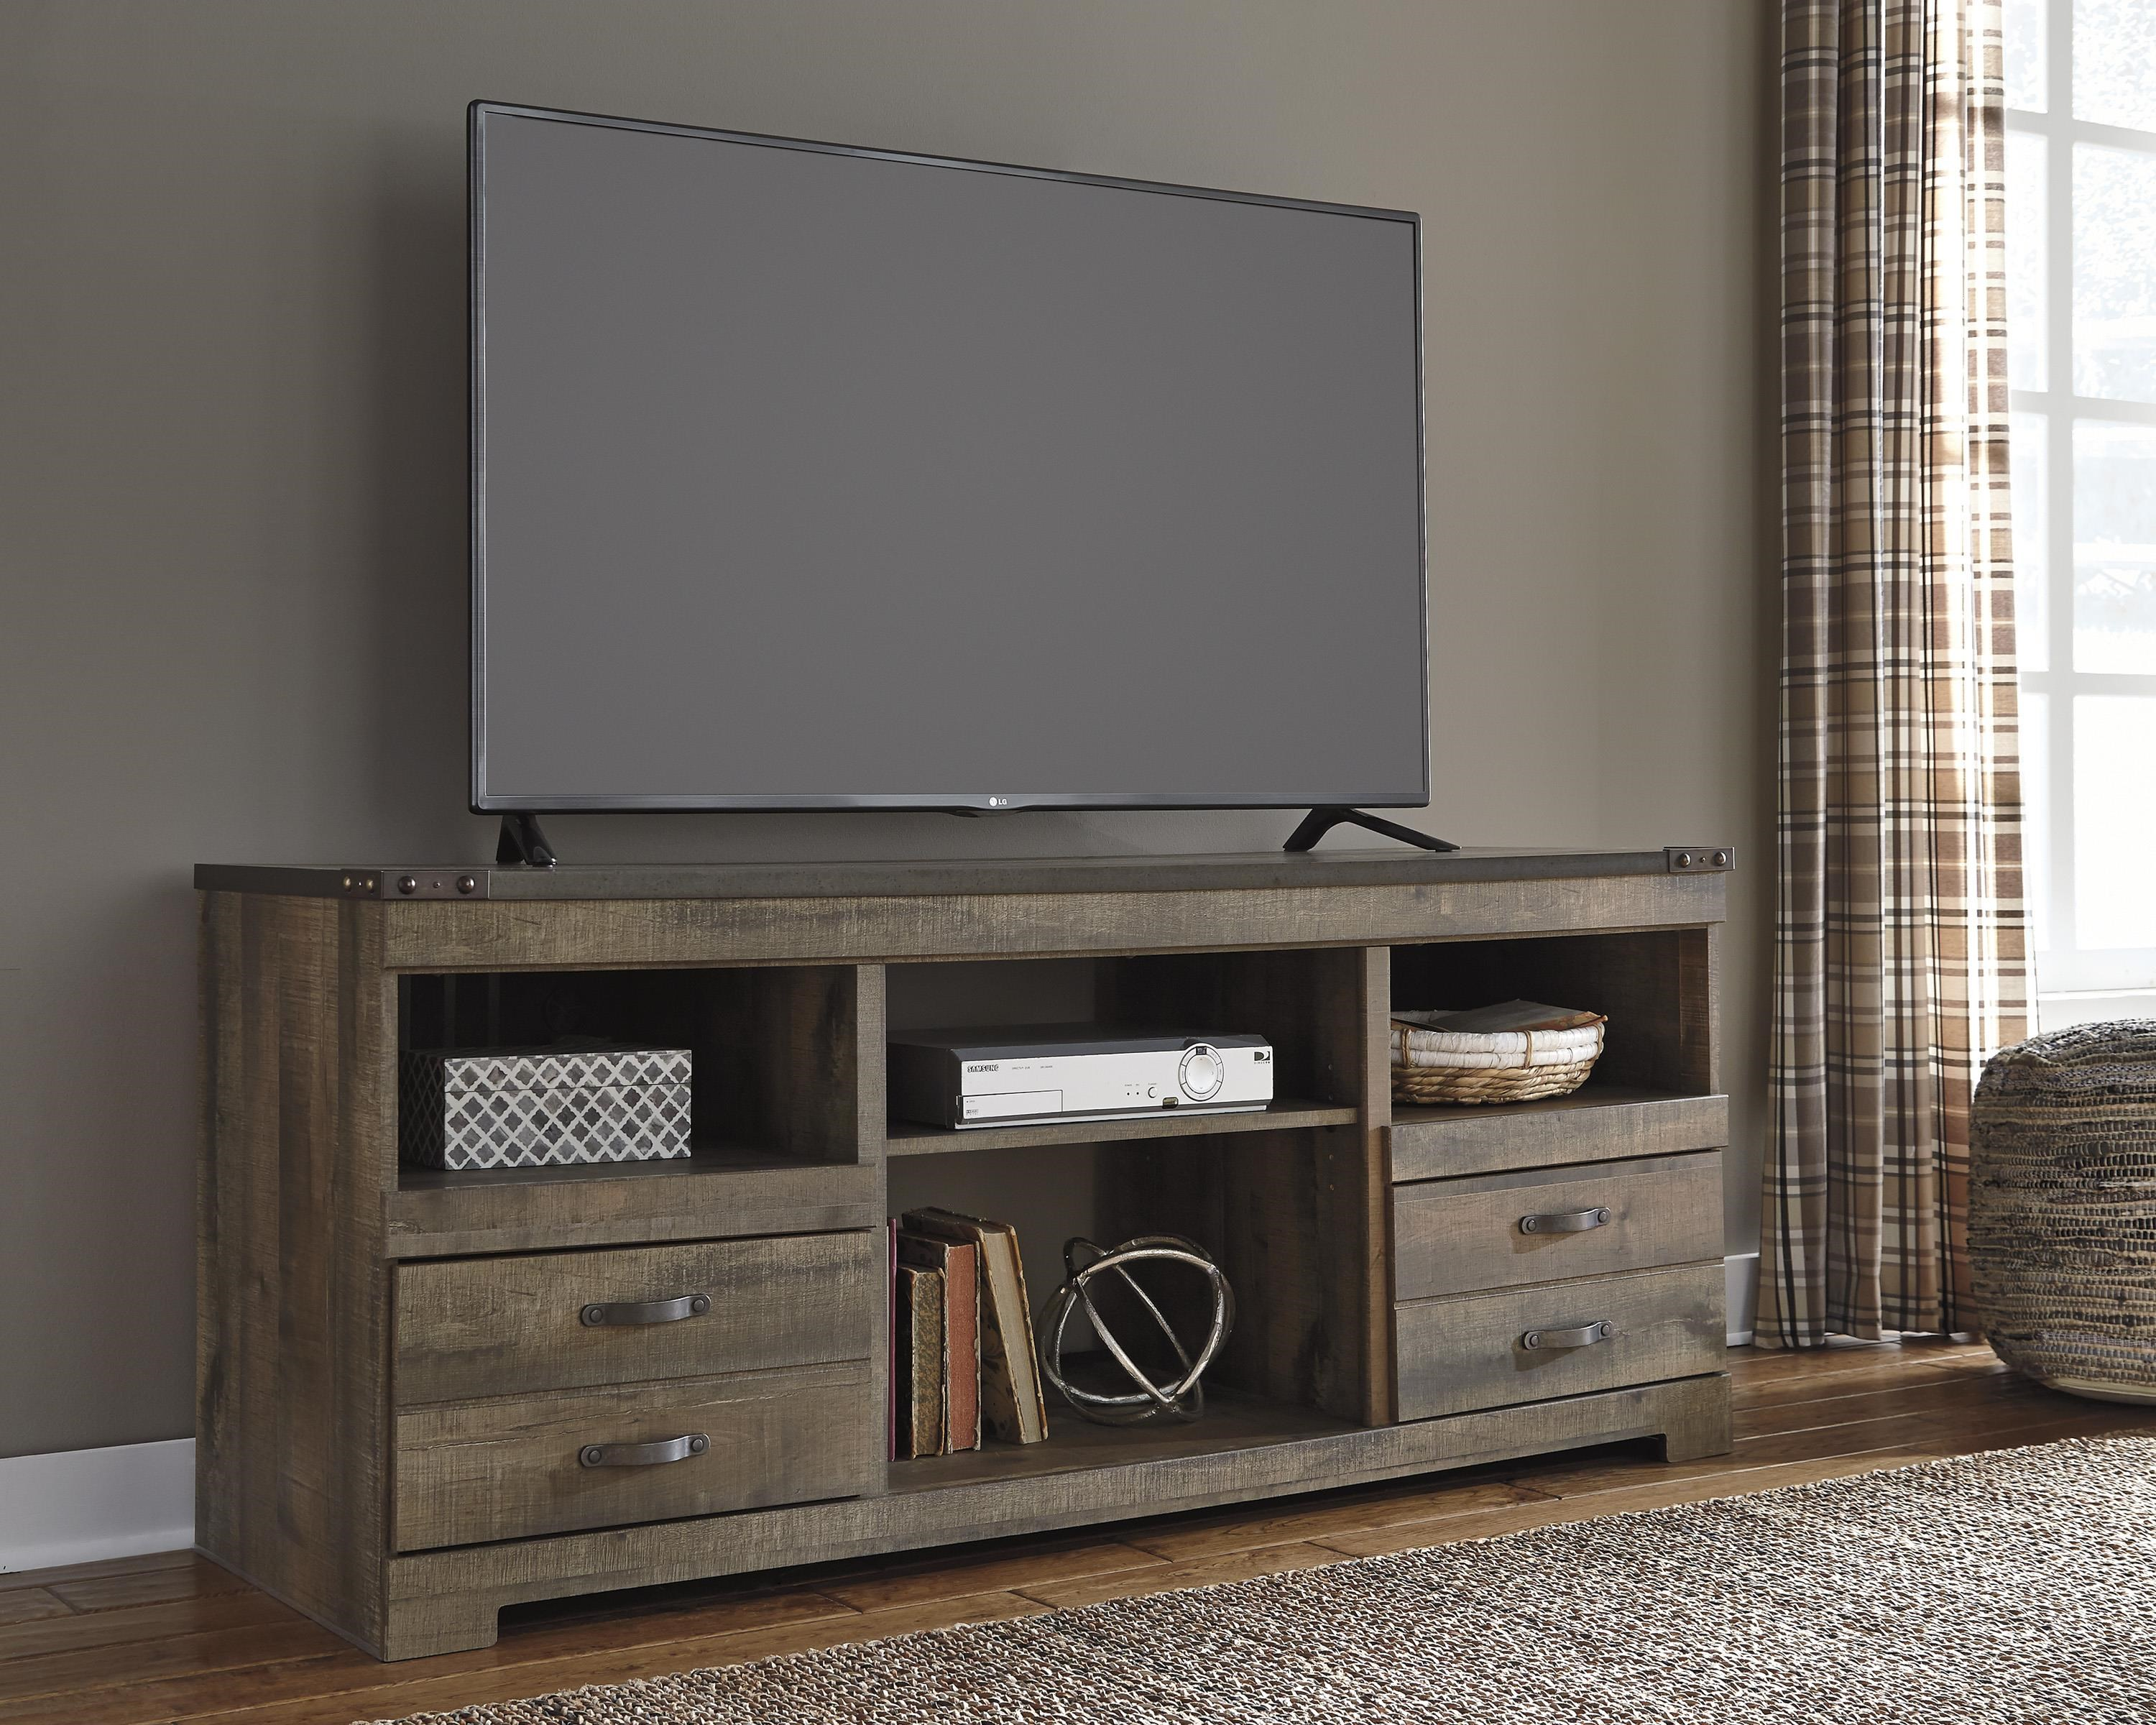 Signature Design By Ashley Trinell Rustic Large Tv Stand With Metal Rivet Detail Royal Furniture Tv Stands